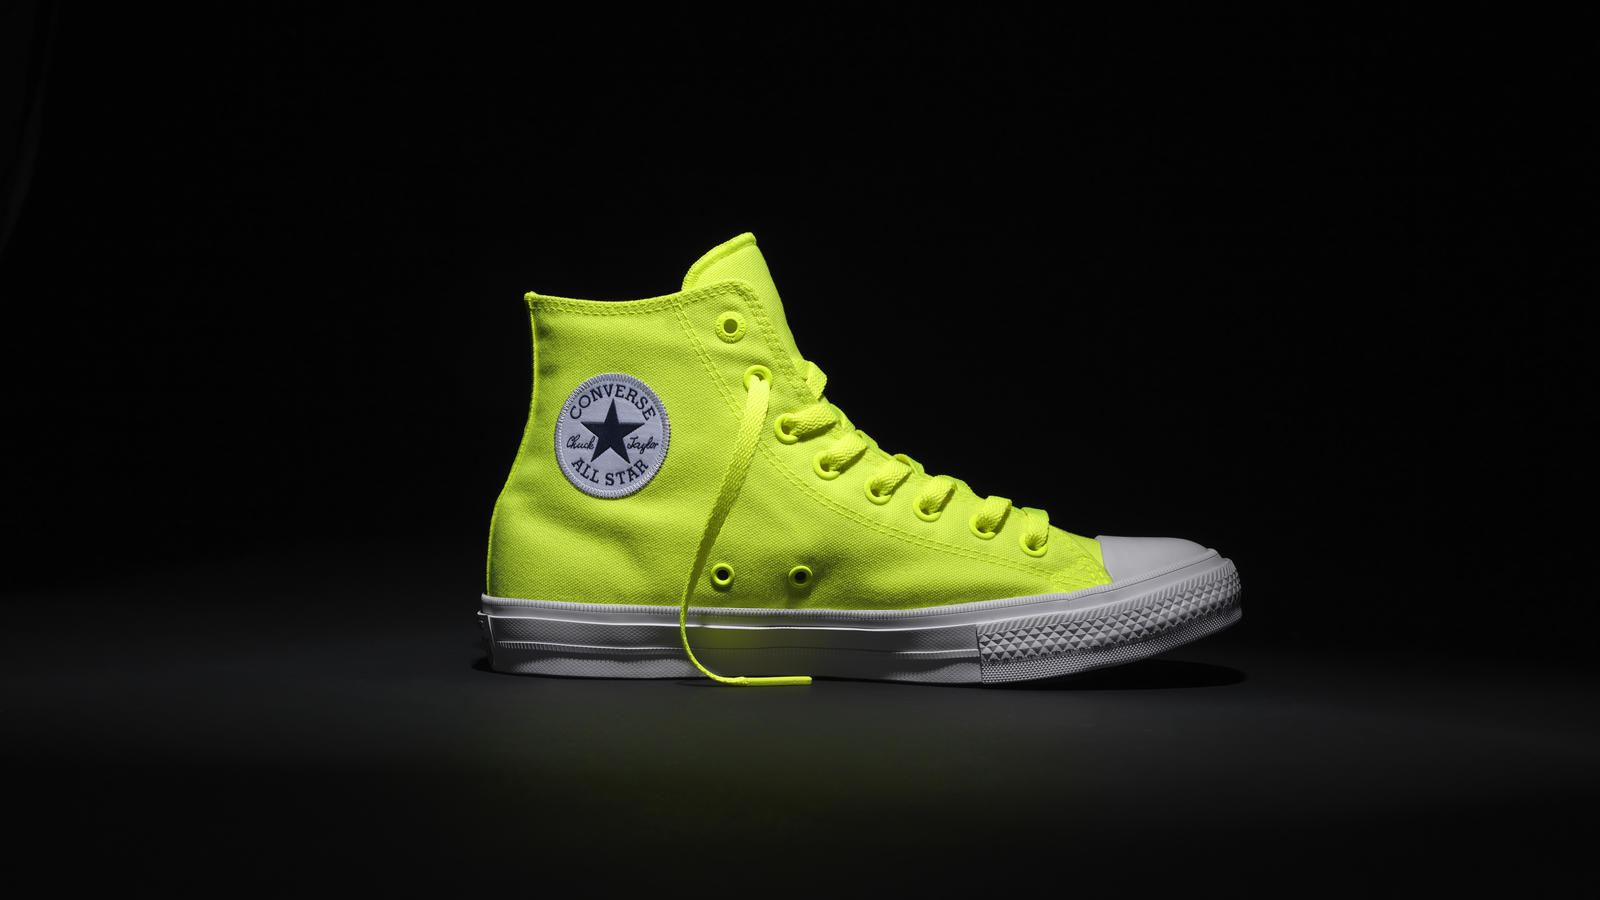 on sale 4a456 f7de6 CONVERSE CHUCK TAYLOR ALL STAR II SHOWS ITS TRUE COLORS WITH ...